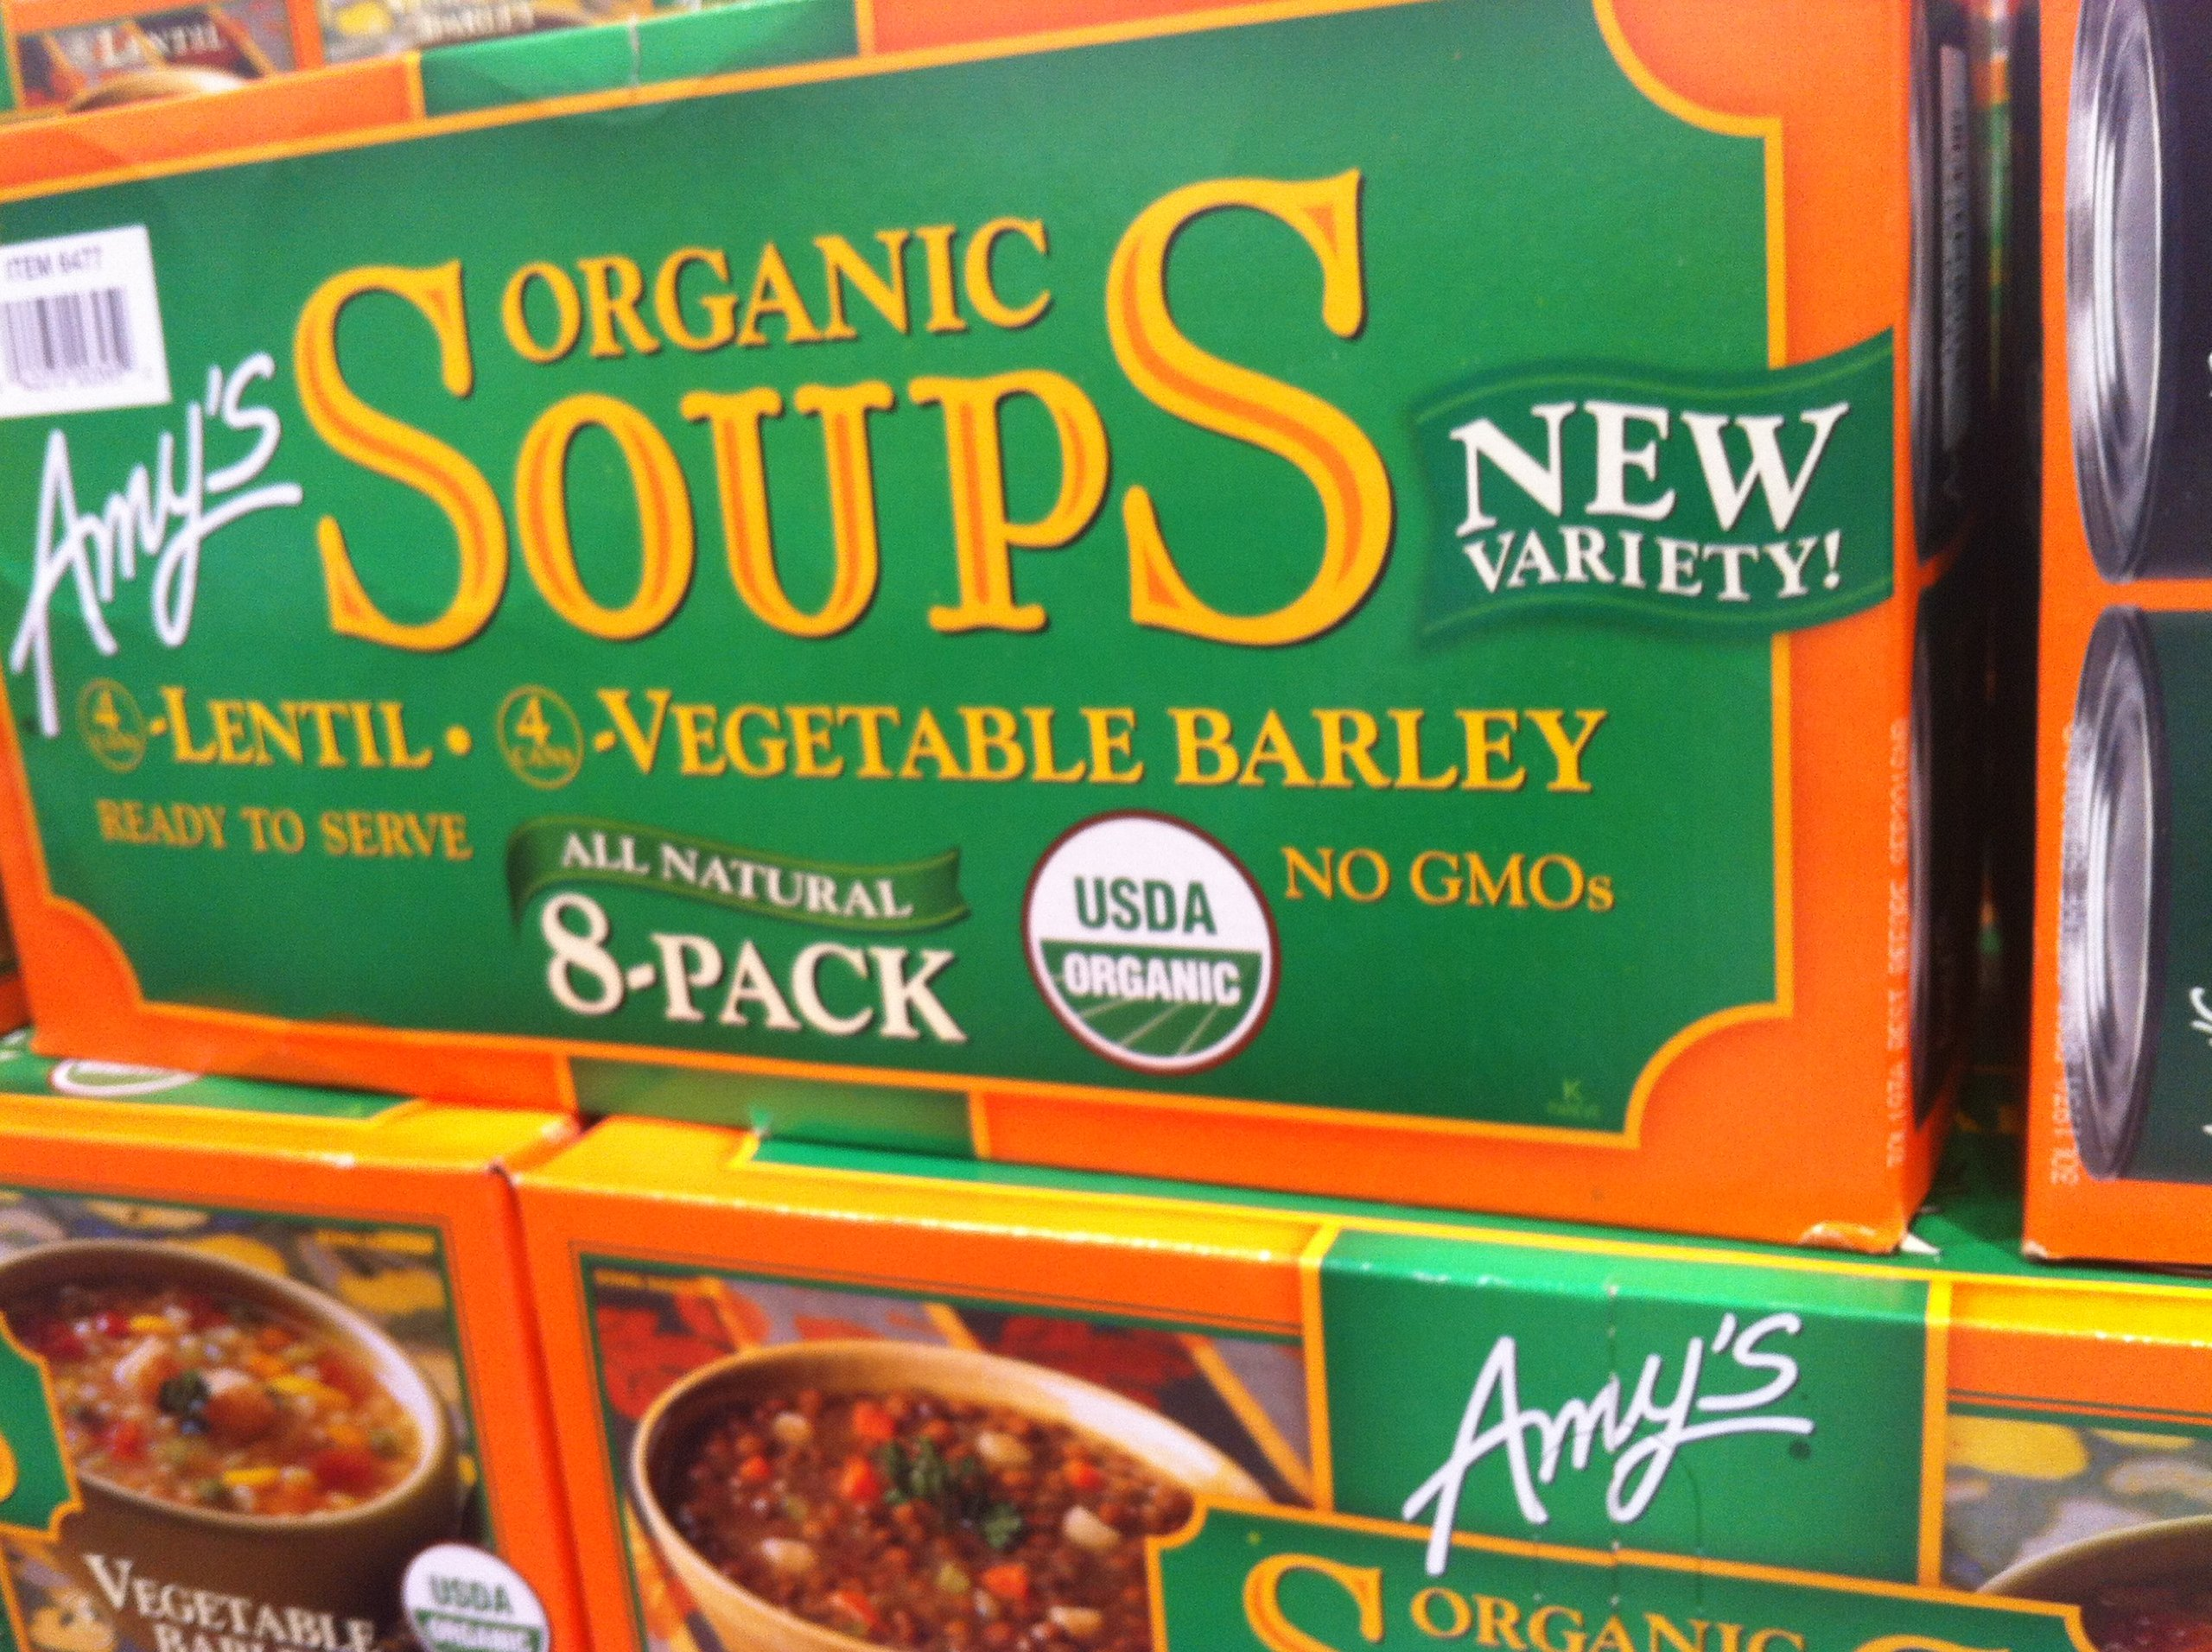 Amy's Variety Pack Lentils & Vegetable Barely USDA Organic Soup - 8 Pack - 14 Oz. Each. Gluten Free